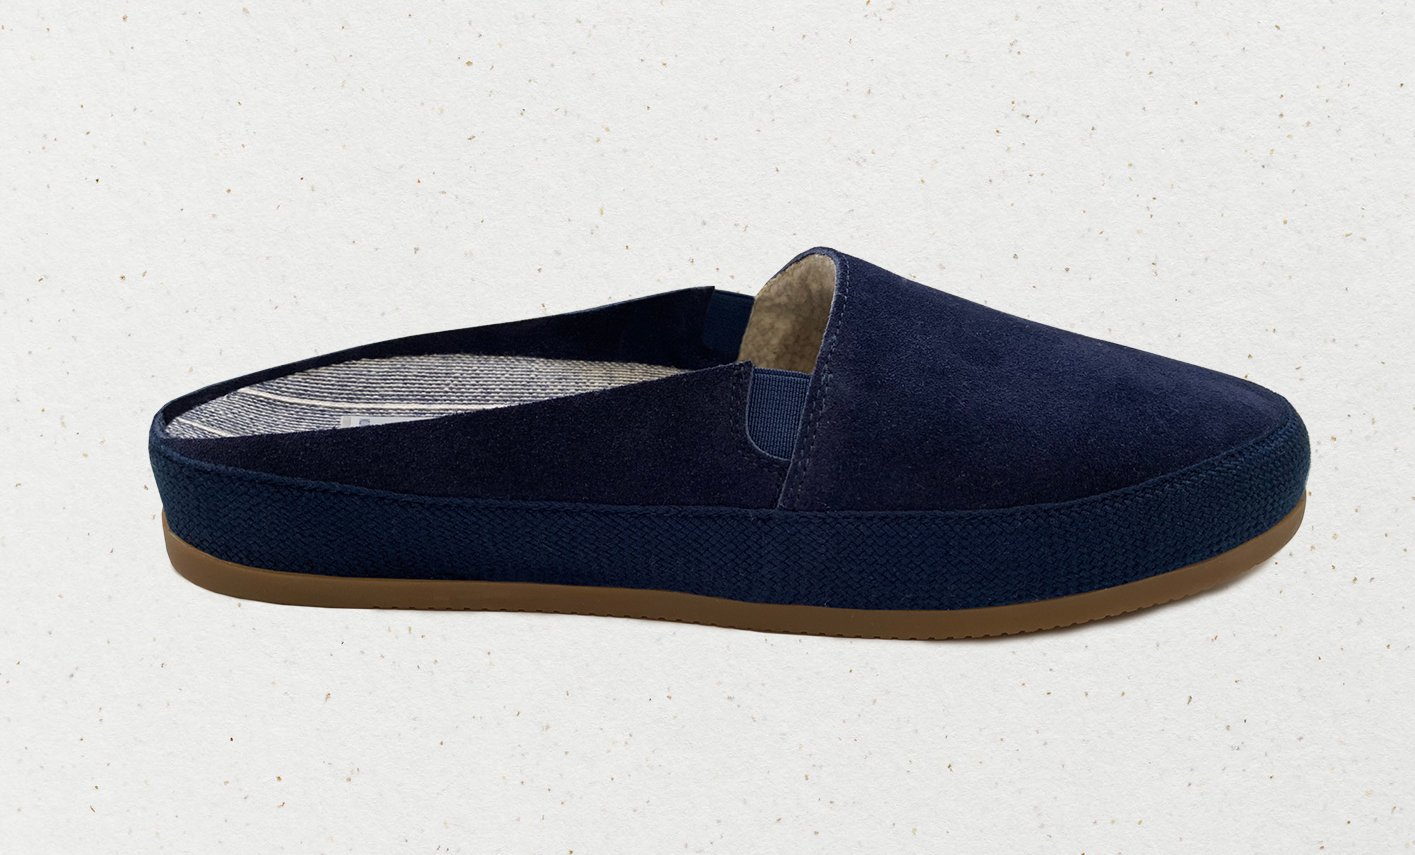 Dependable downtime extravagance: Hamilton and Hare x Mulo suede slippers